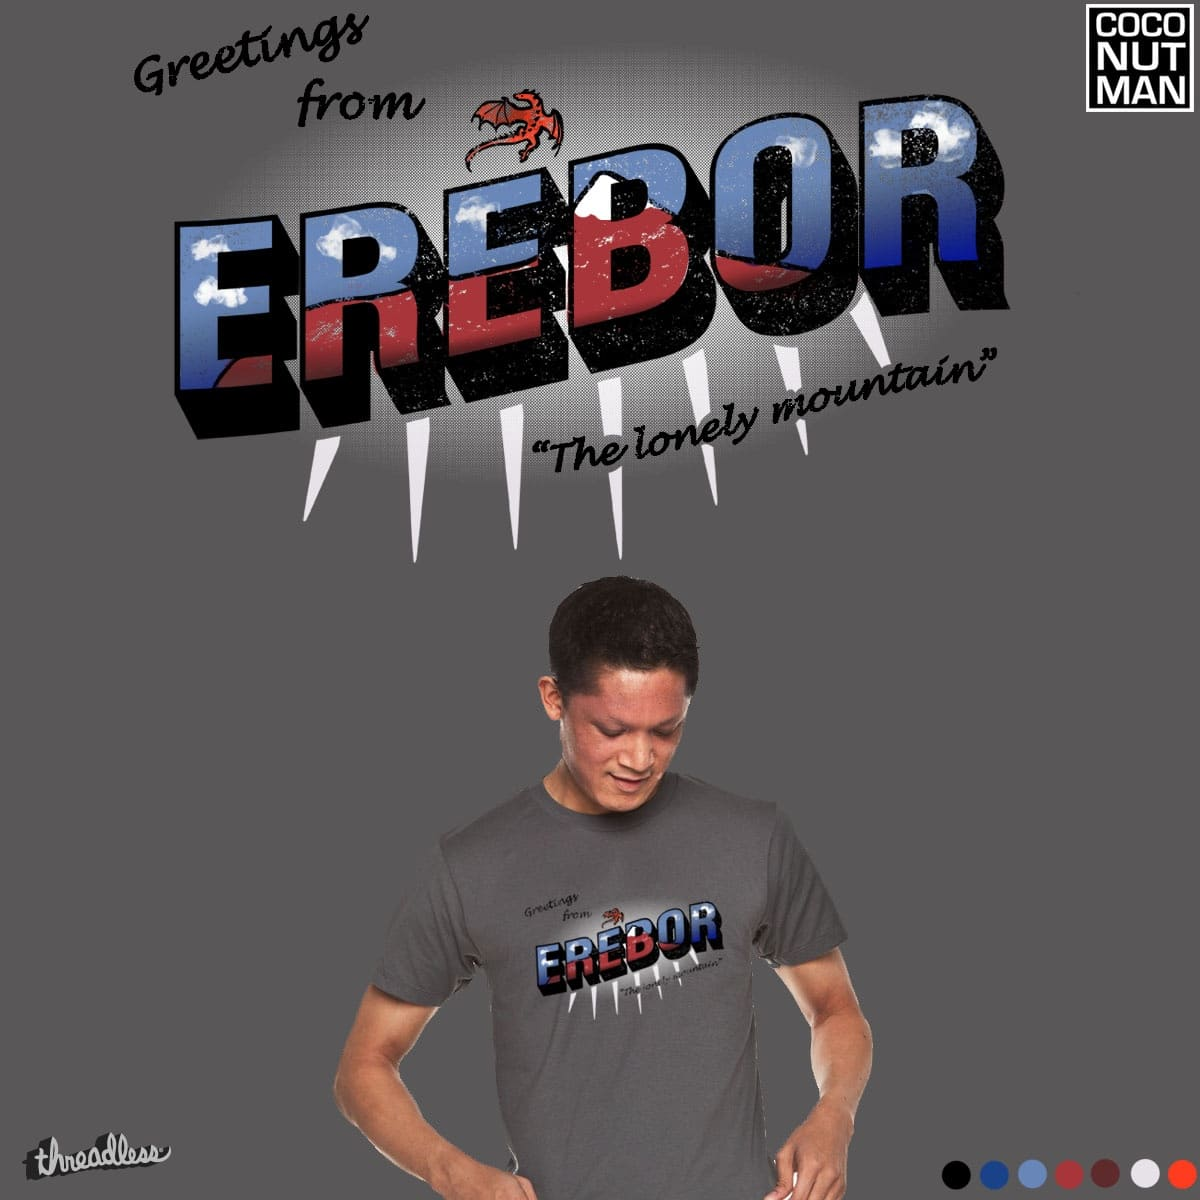 Greetings frome Erebor! by coconutman on Threadless